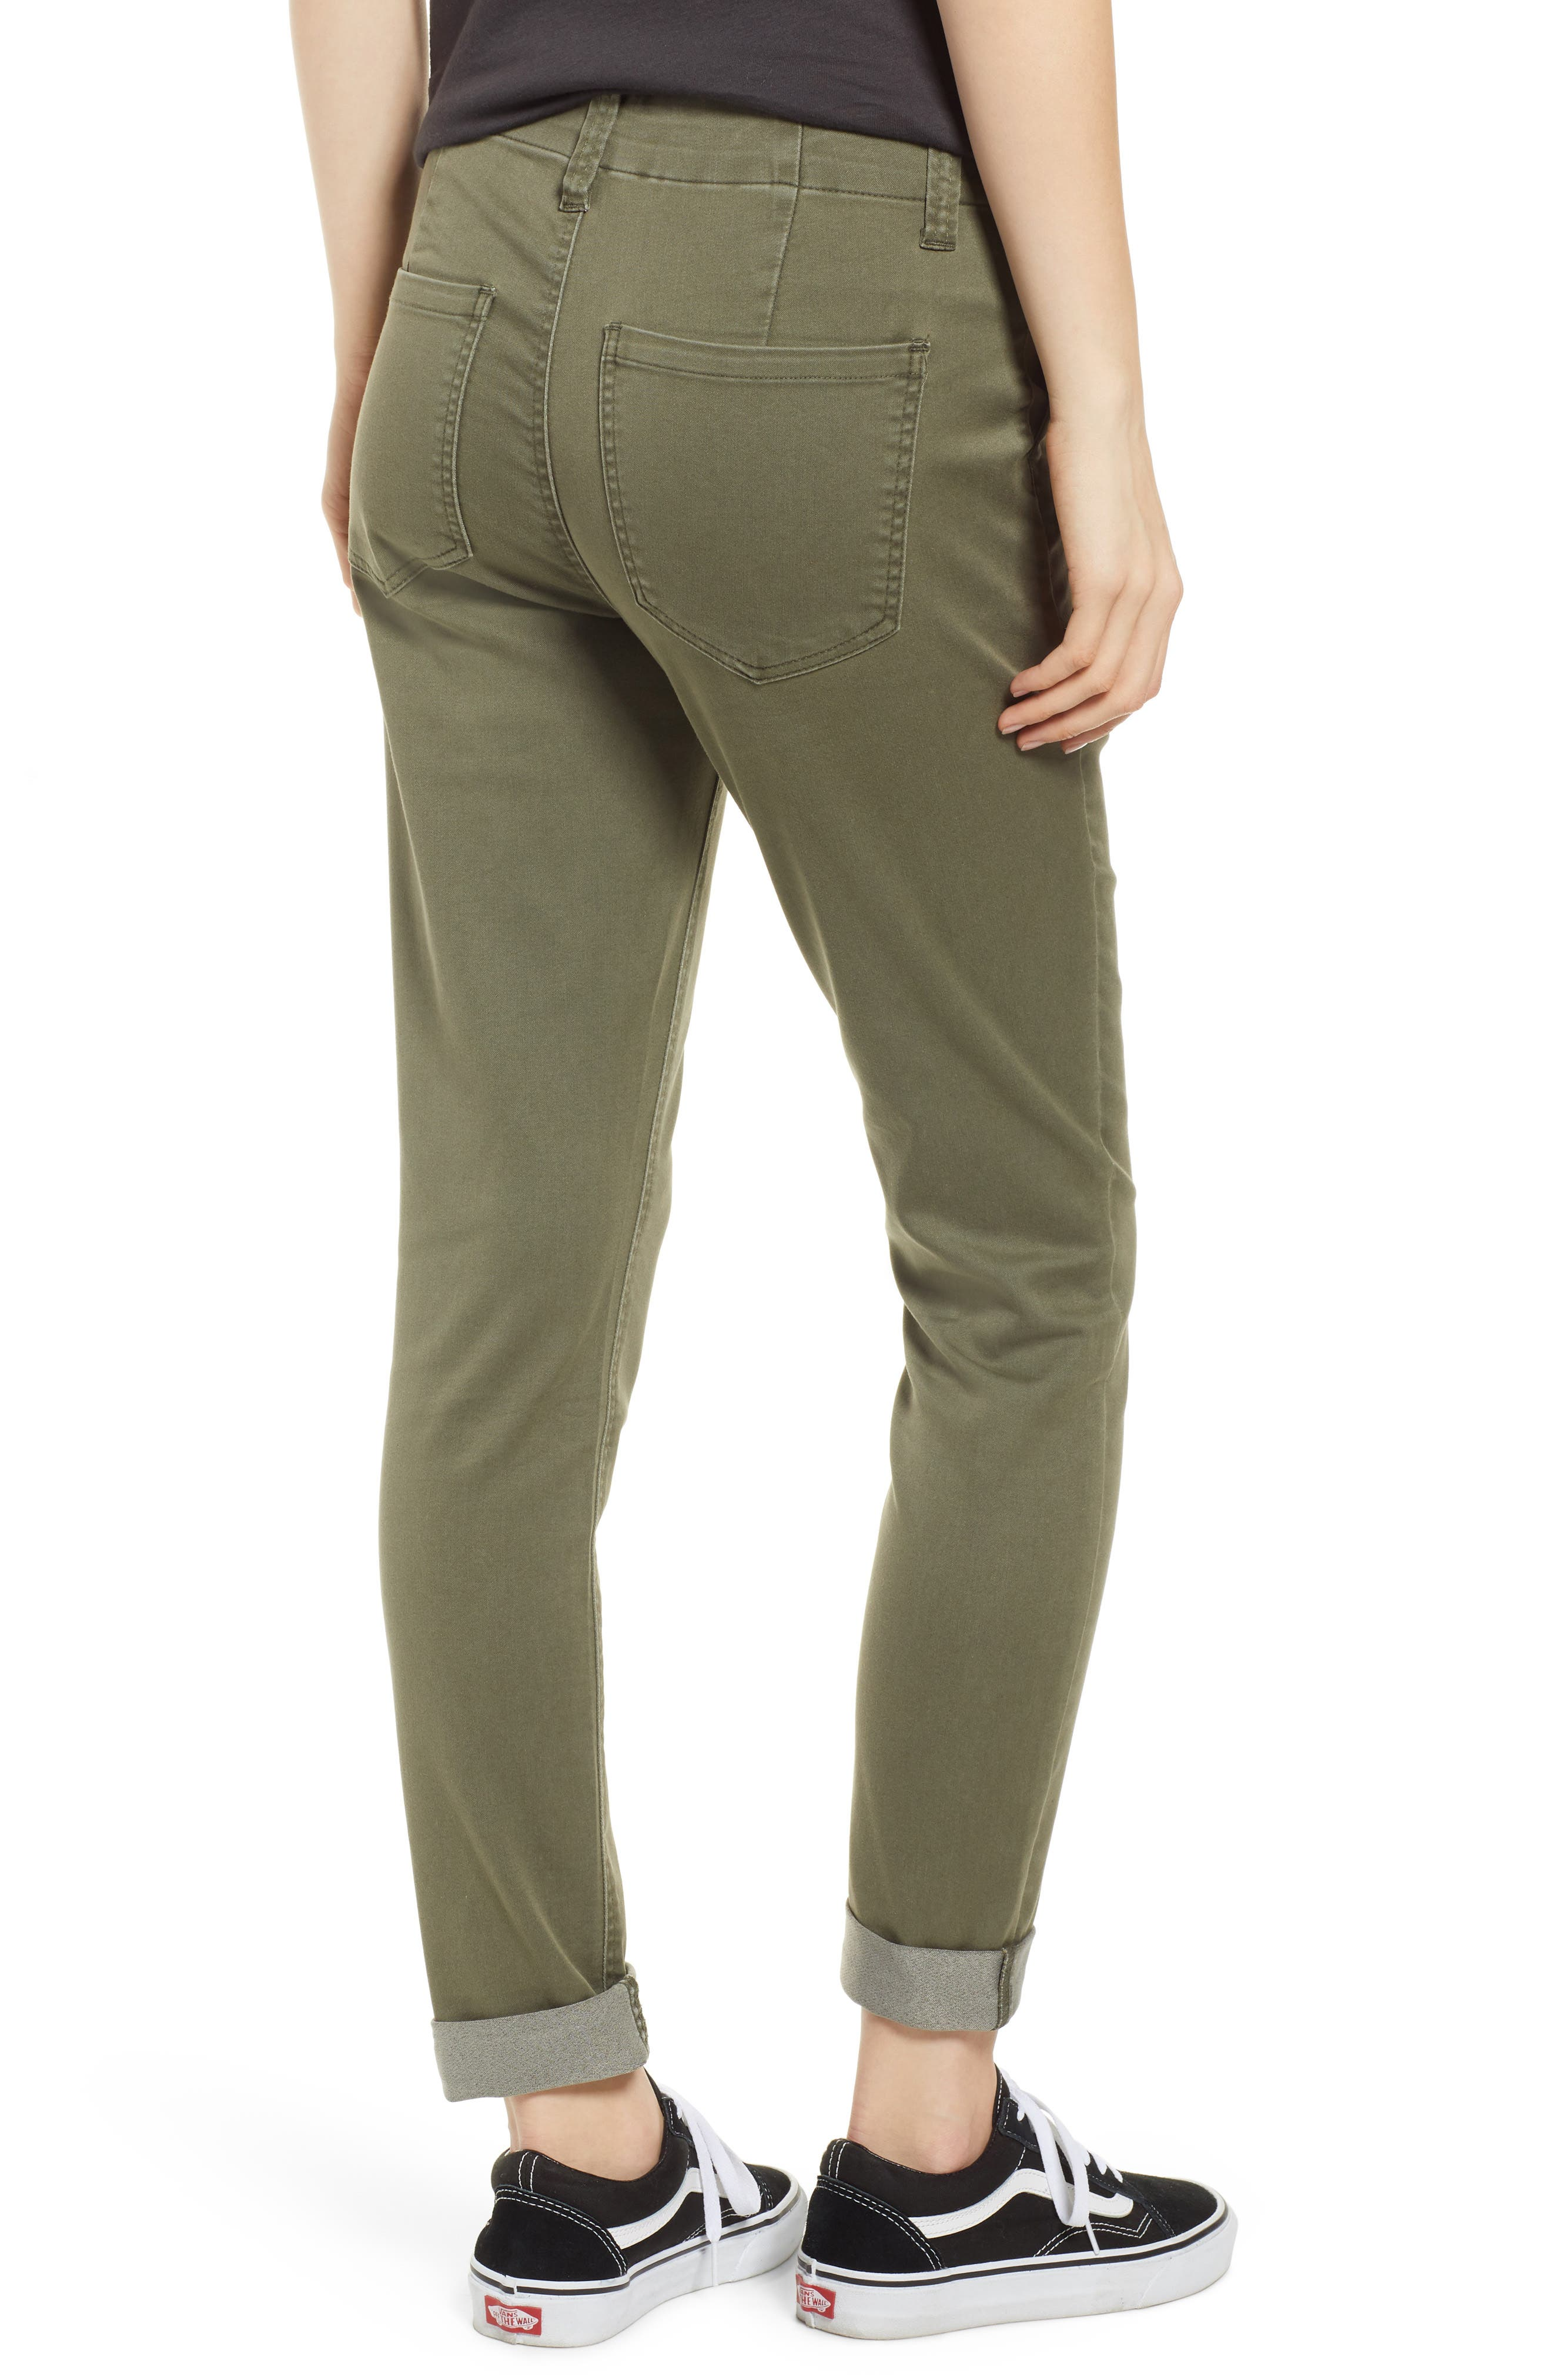 TINSEL, Cuffed Sateen Skinny Pants, Alternate thumbnail 2, color, DUSTY OLIVE